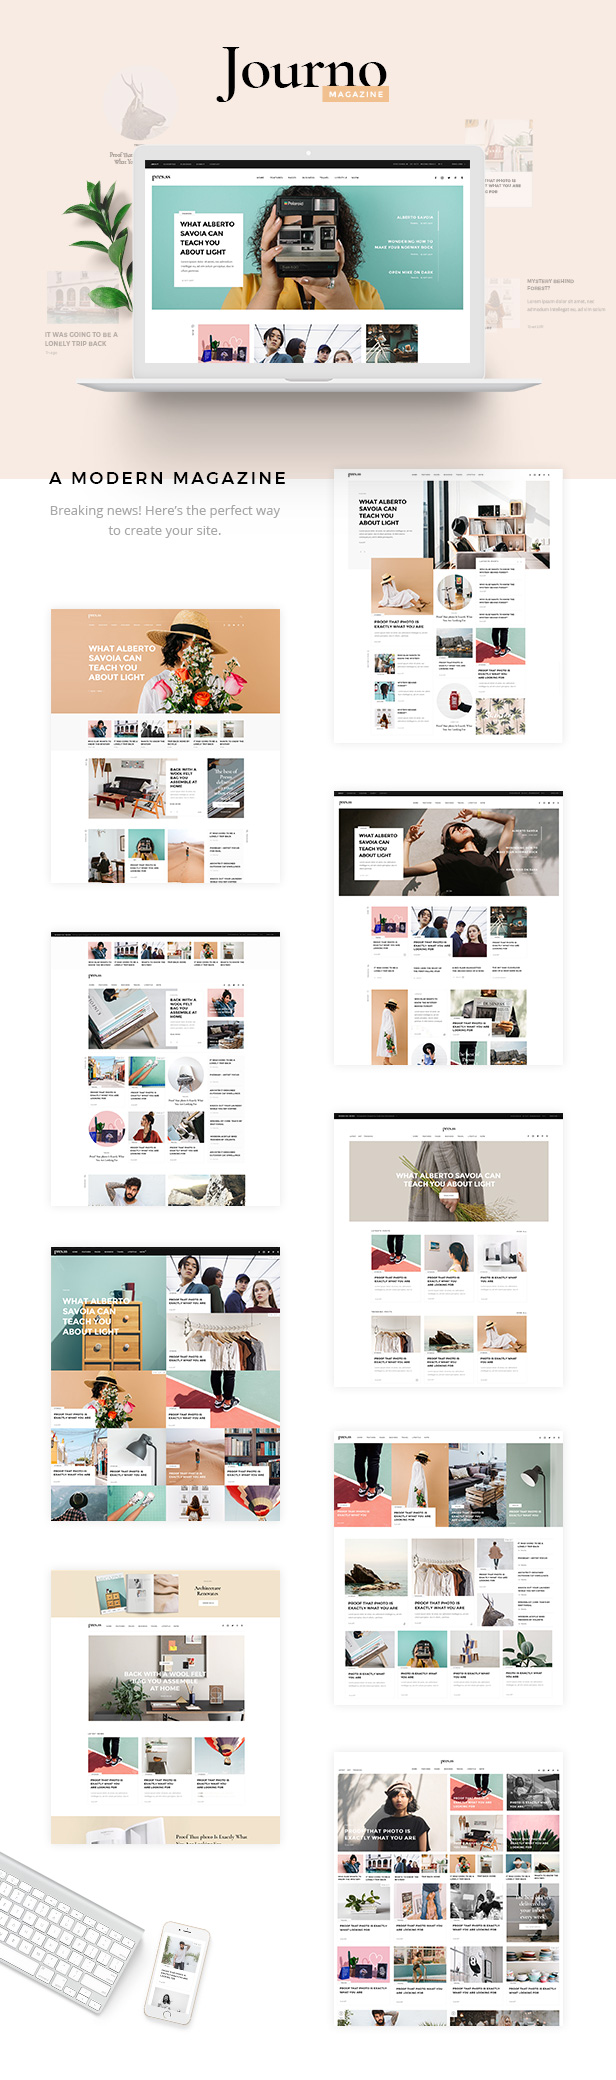 Journo - A Creative Magazine and Blog Theme